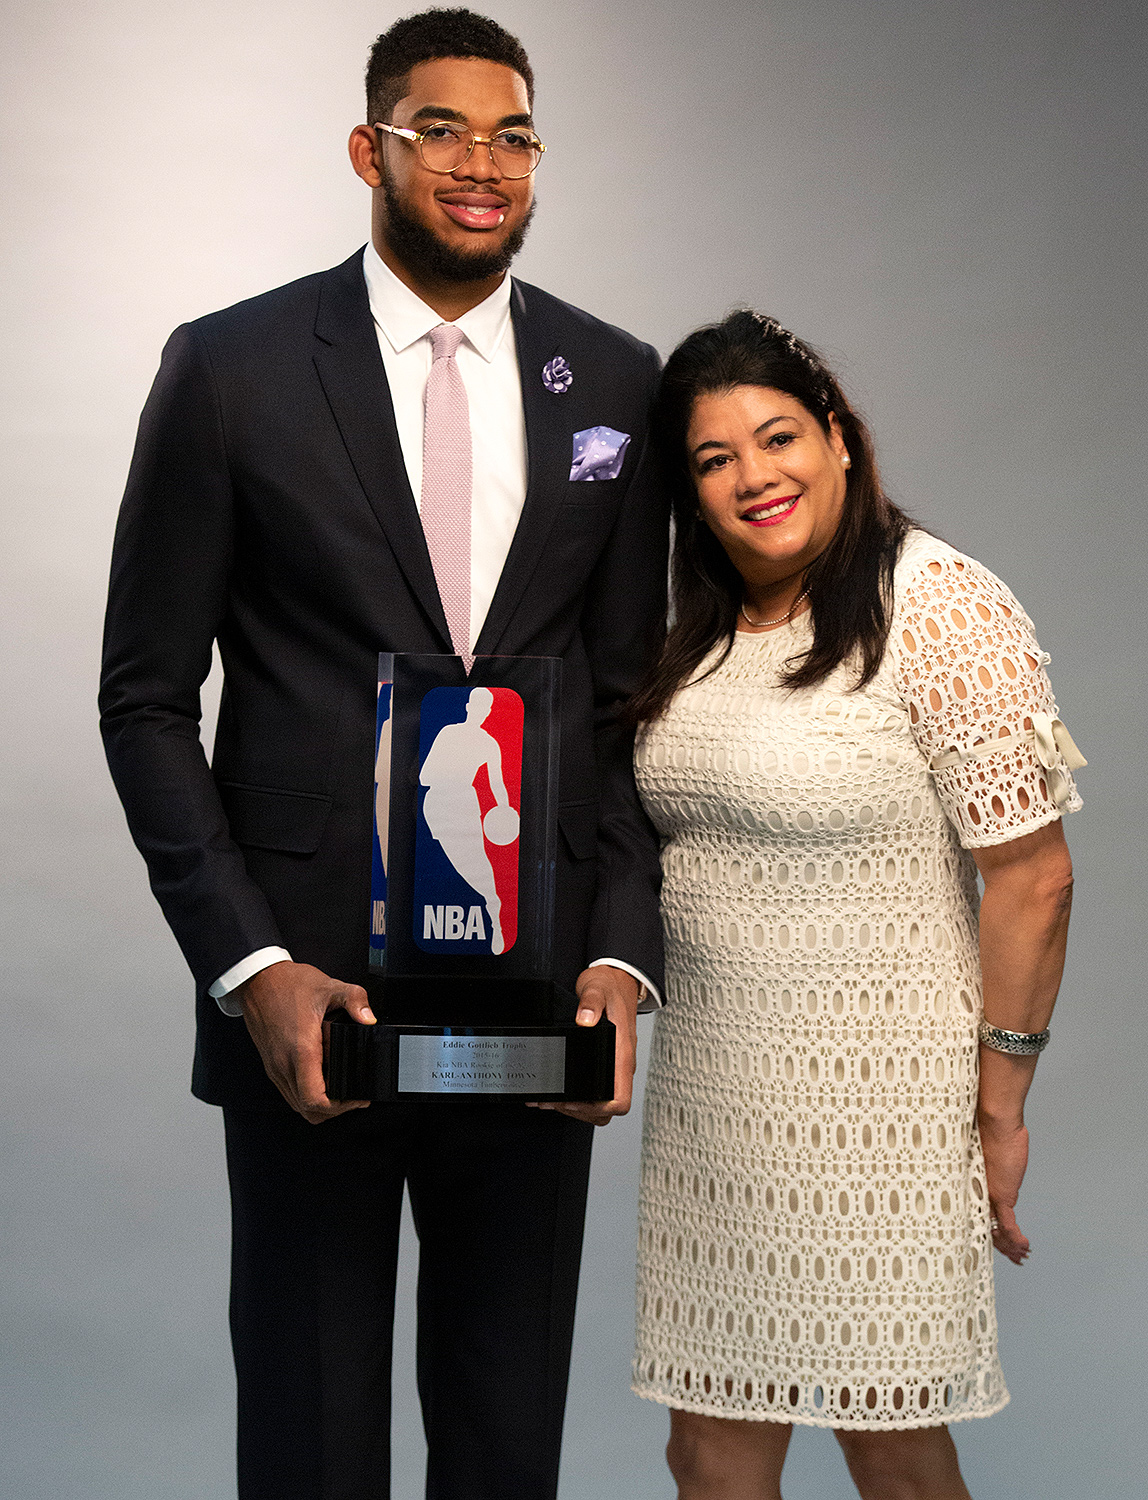 Jacqueline Towns, Karl Anthony Towns